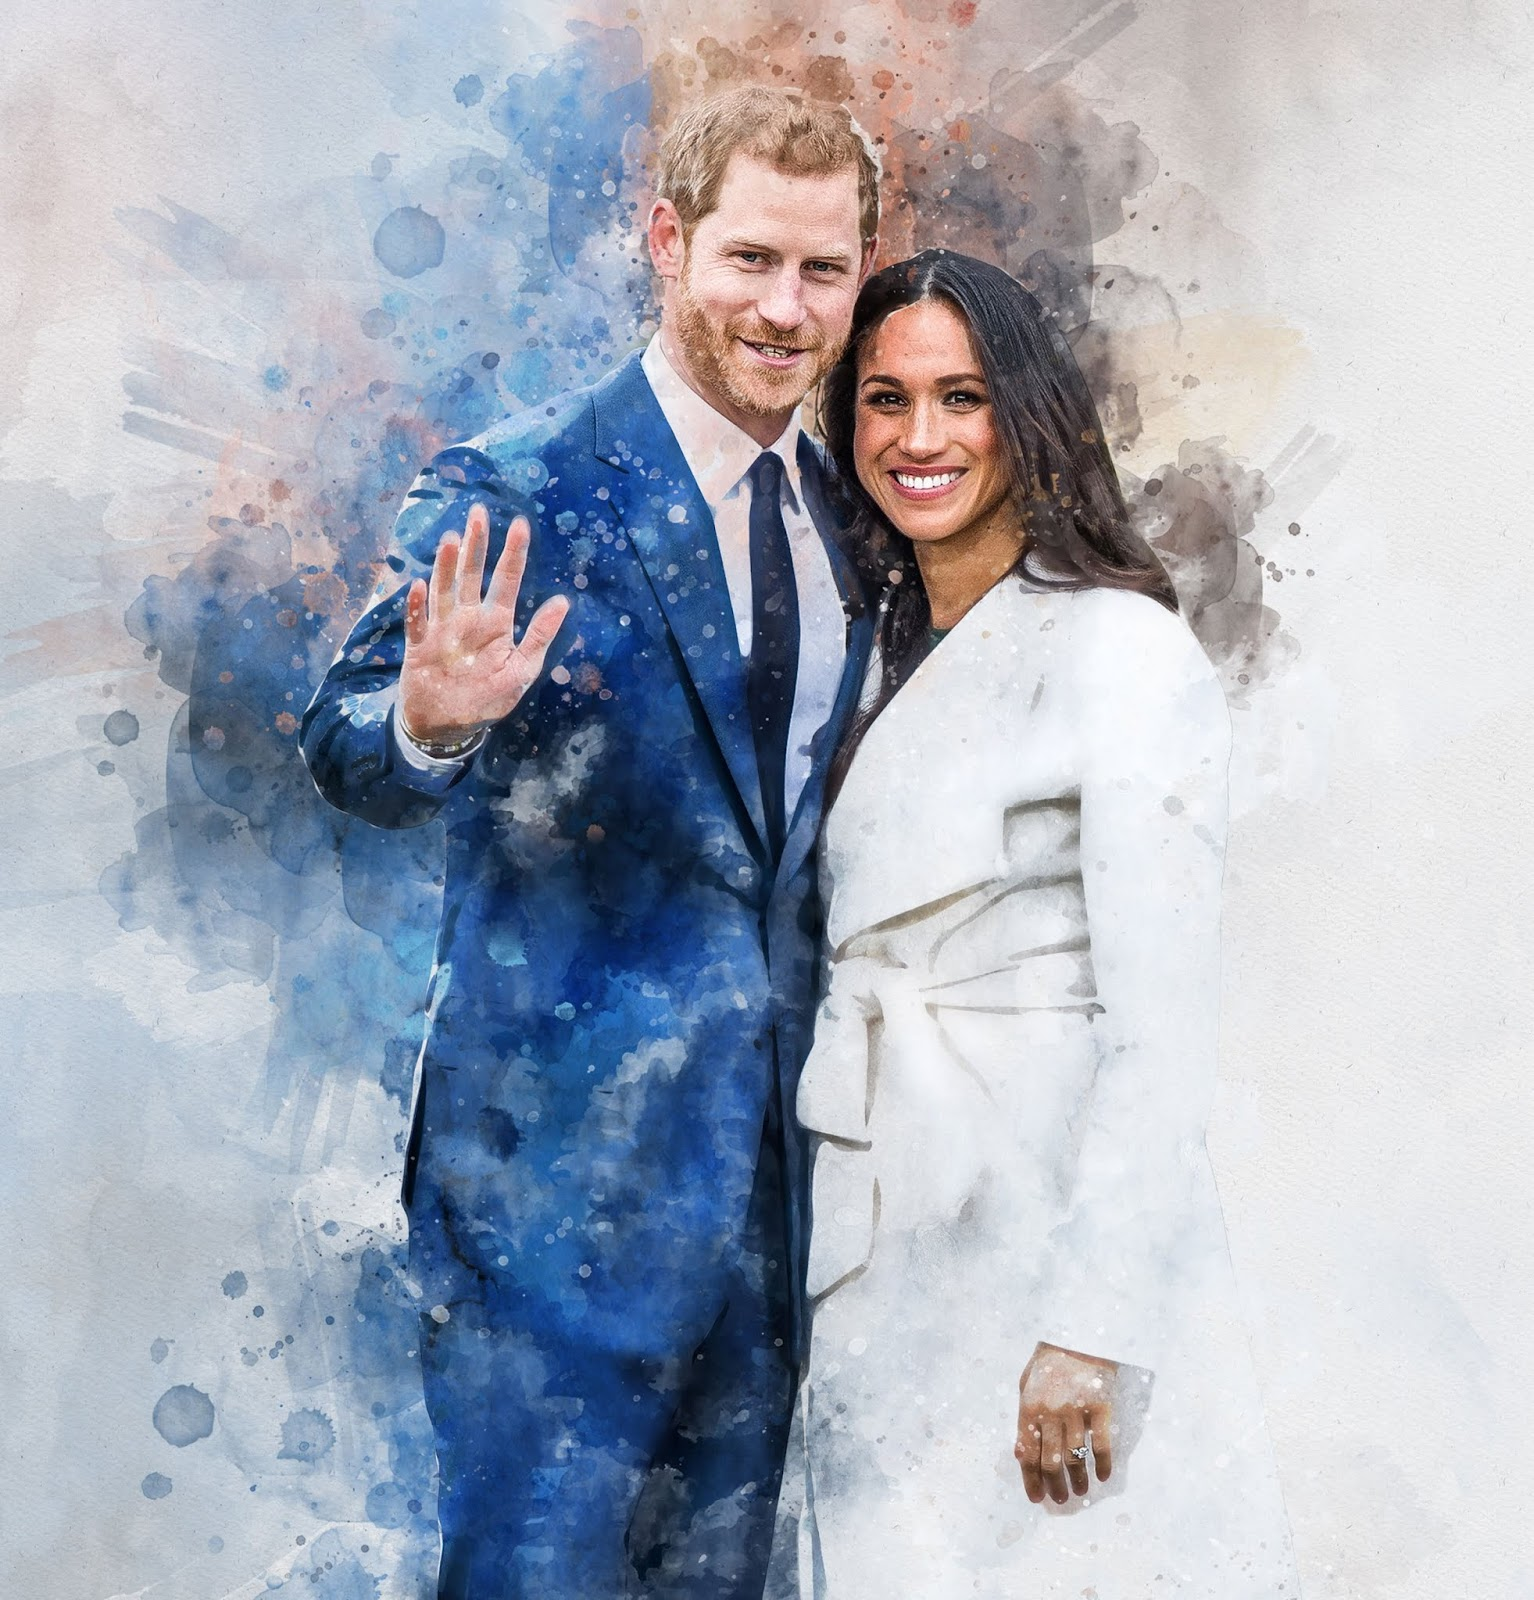 Prince Harry & Meghan Markle's Big Day